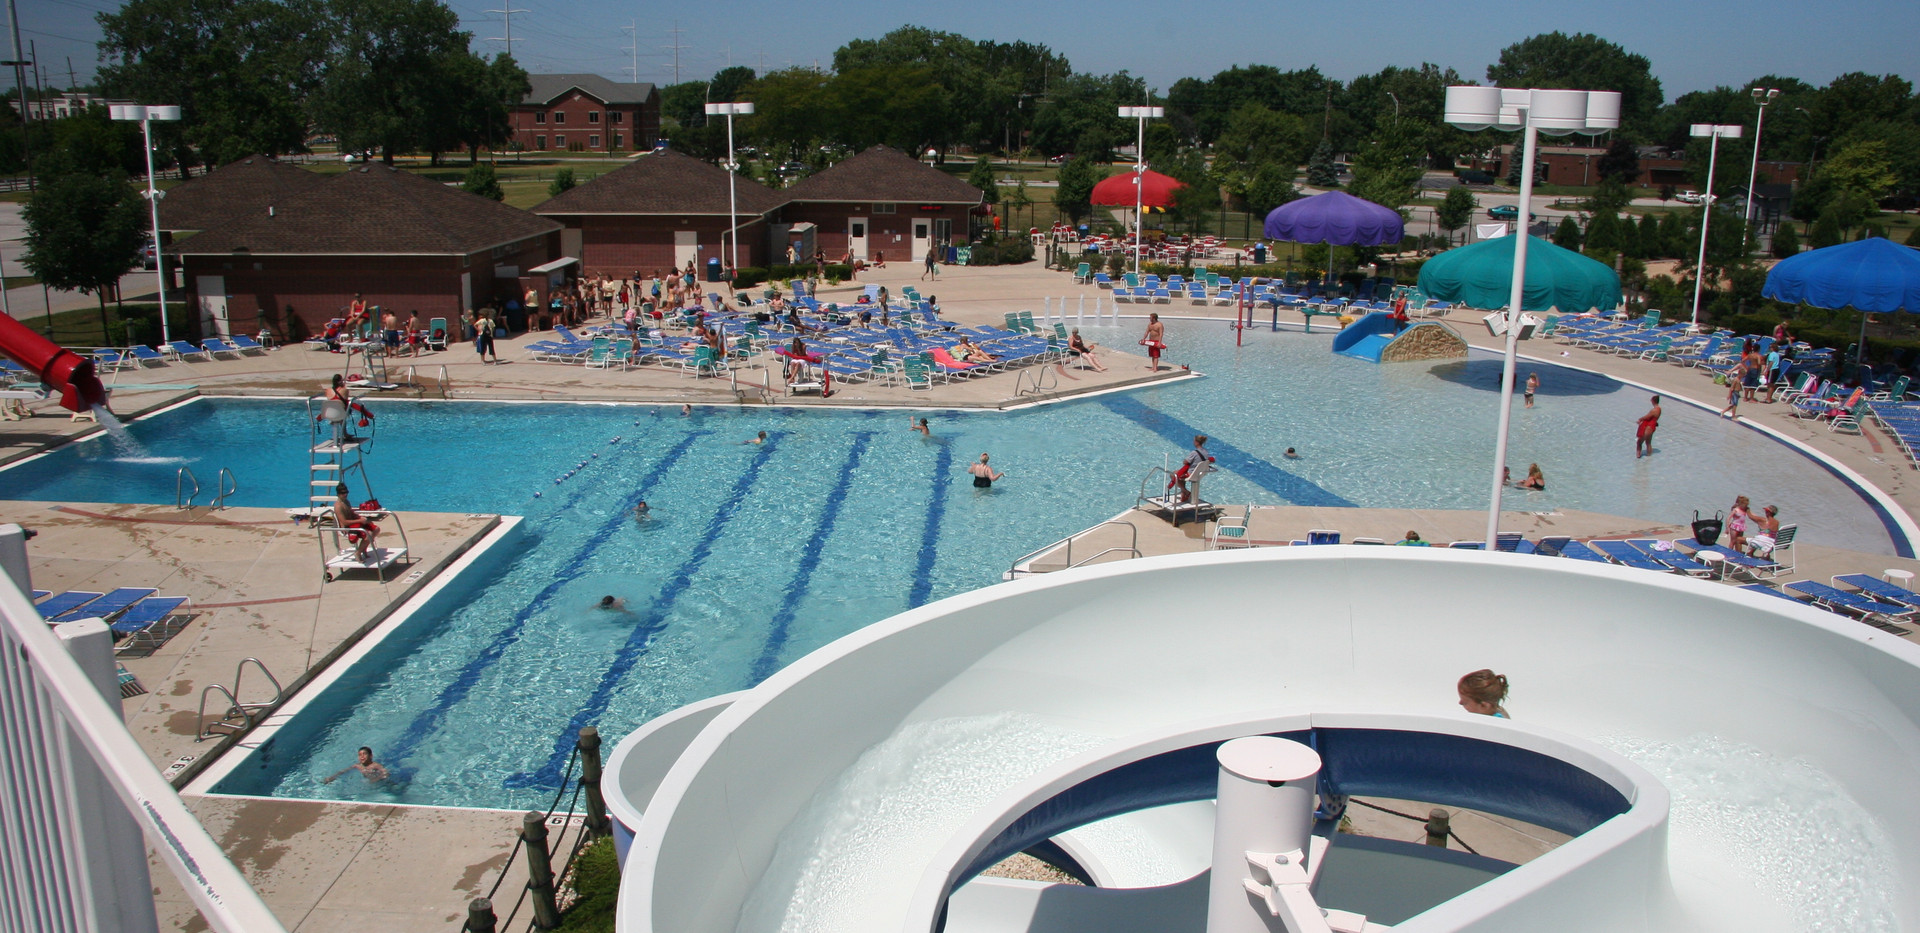 Hasse Photography-Munster Pool 004.jpg